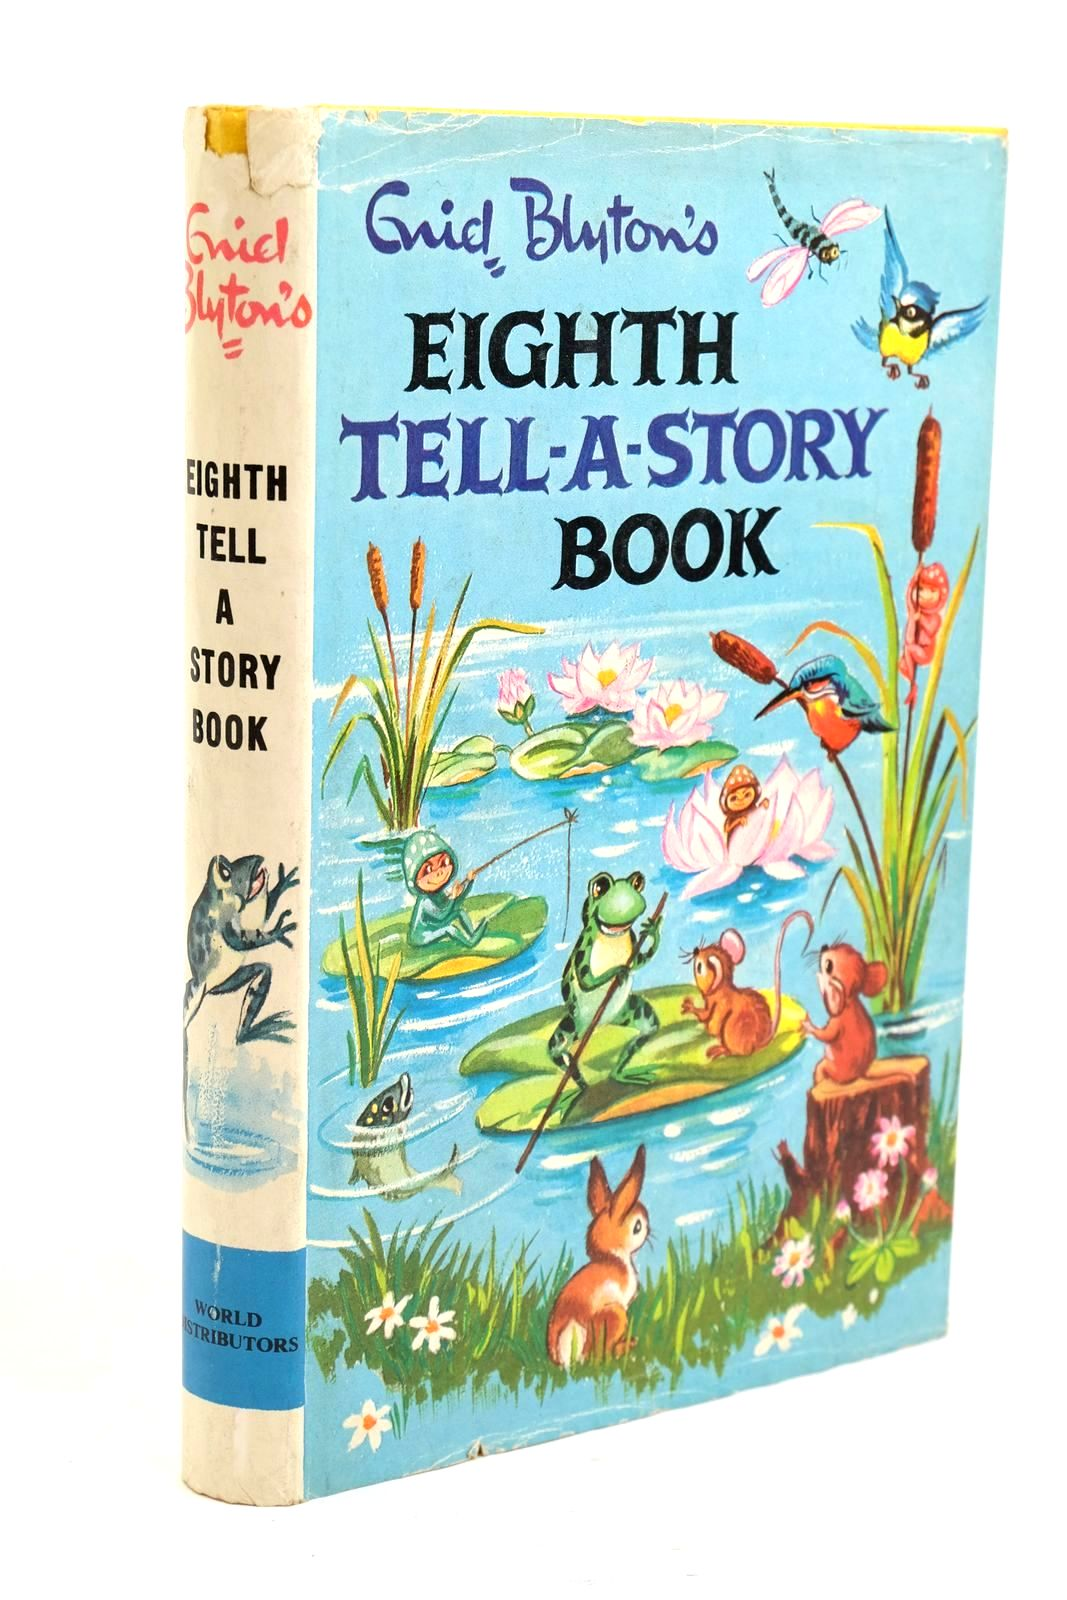 Photo of ENID BLYTON'S EIGHTH TELL-A-STORY BOOK written by Blyton, Enid published by World Distributors Ltd. (STOCK CODE: 1321089)  for sale by Stella & Rose's Books